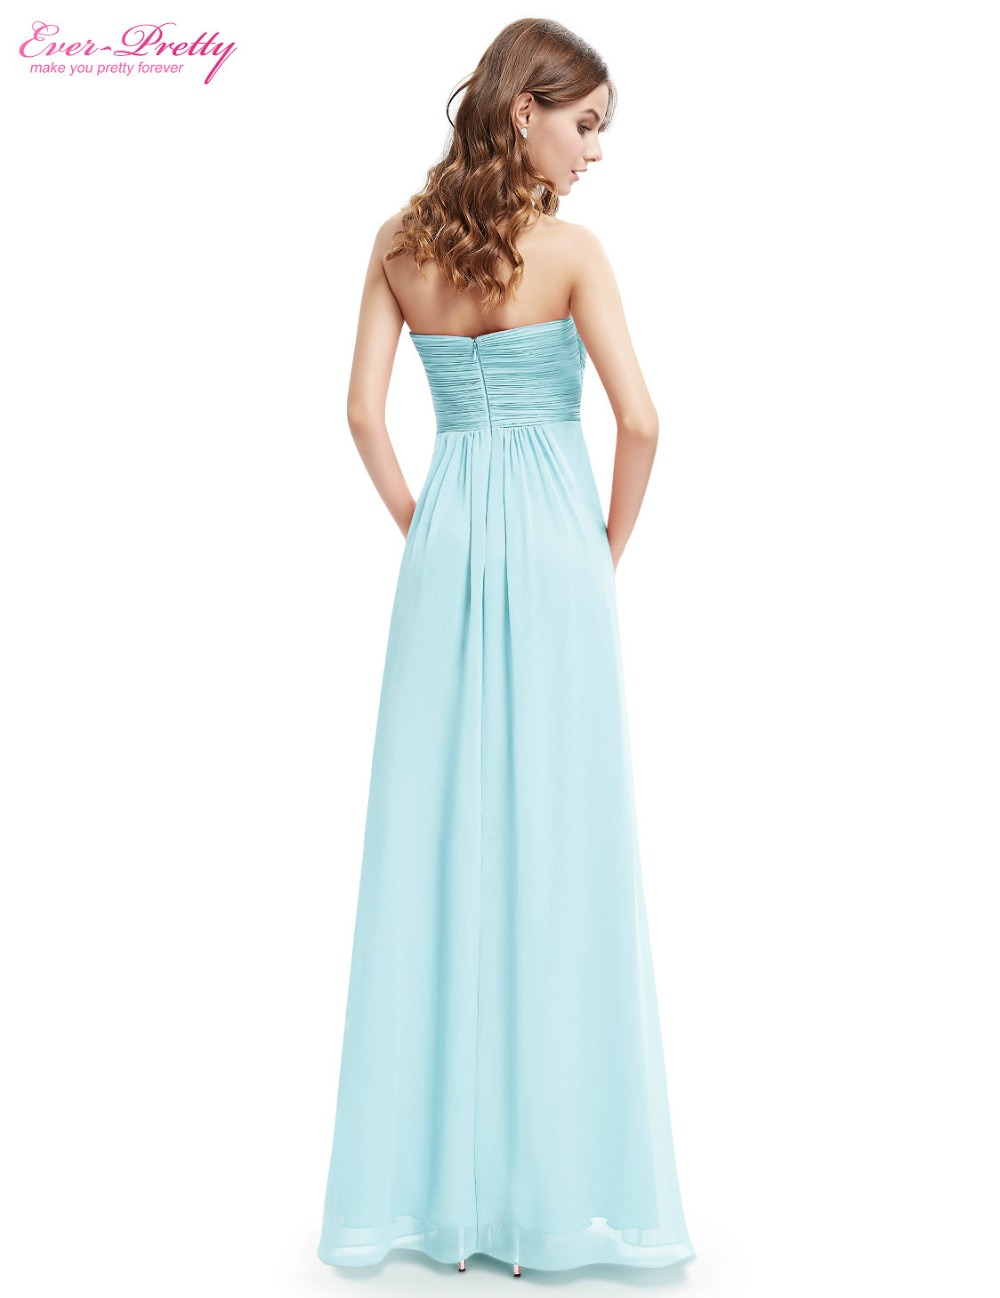 Awesome Bridesmaid Dress Clearance Image Collection - All Wedding ...